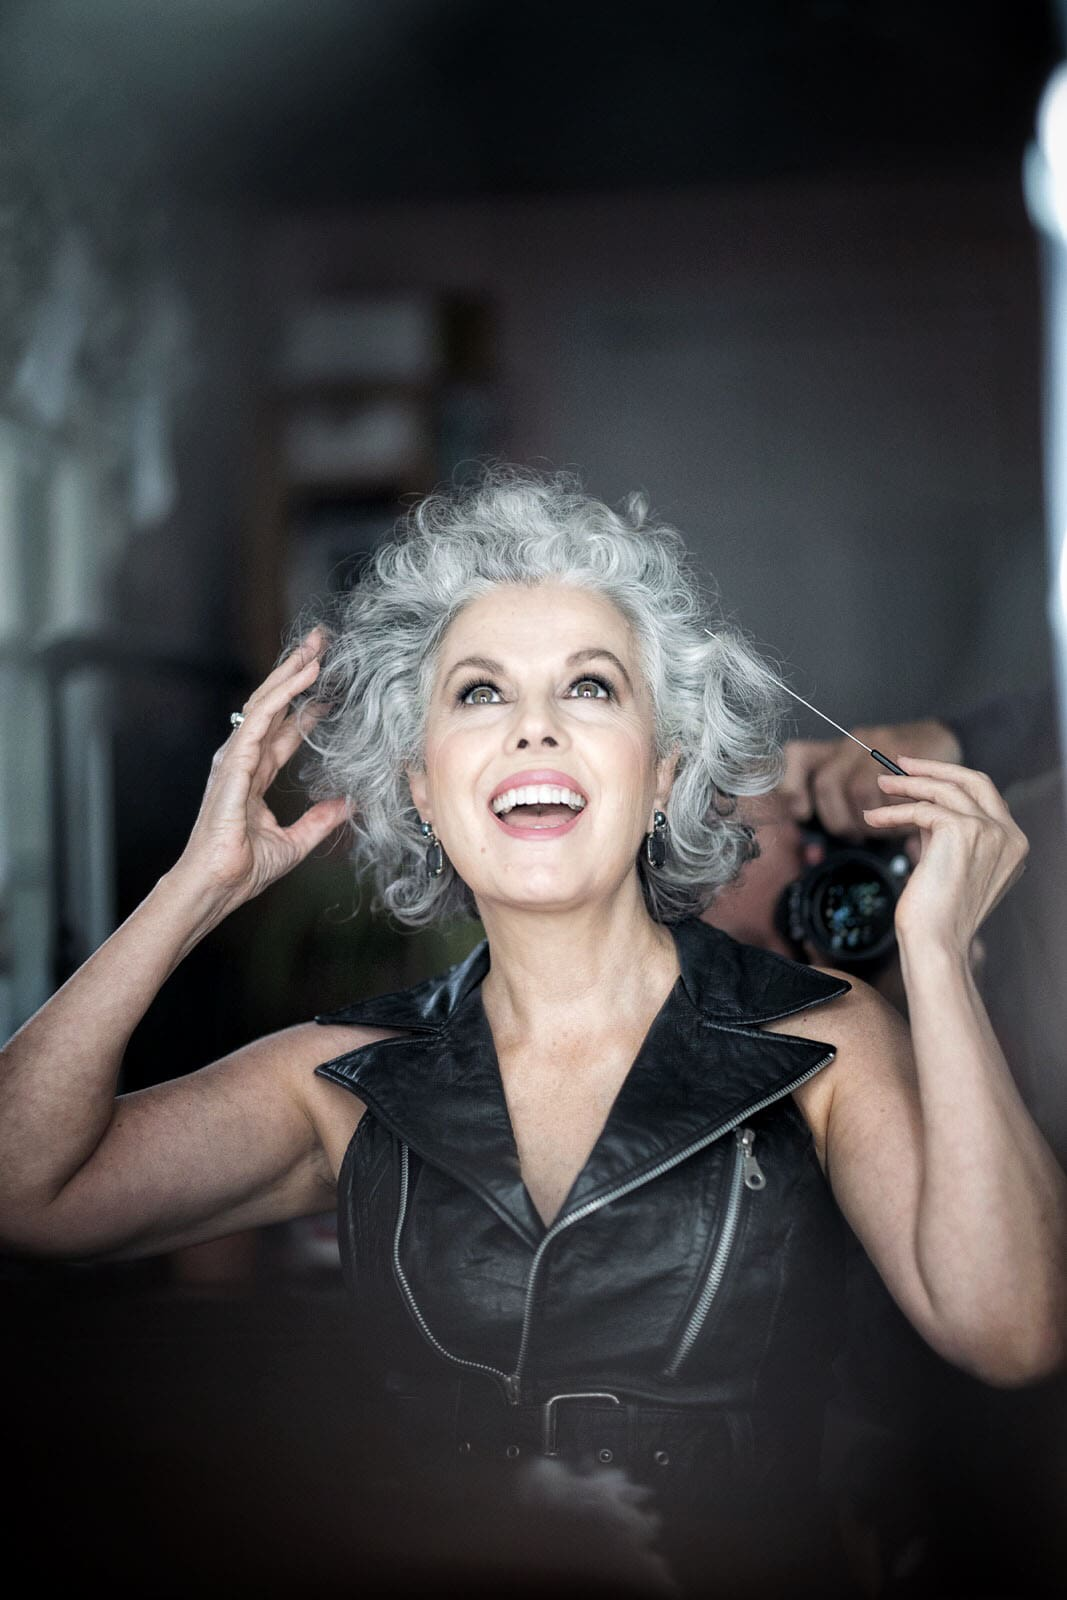 Kerry Lou in Black Leather for Ageless Style on Cindy Hattersley's blog